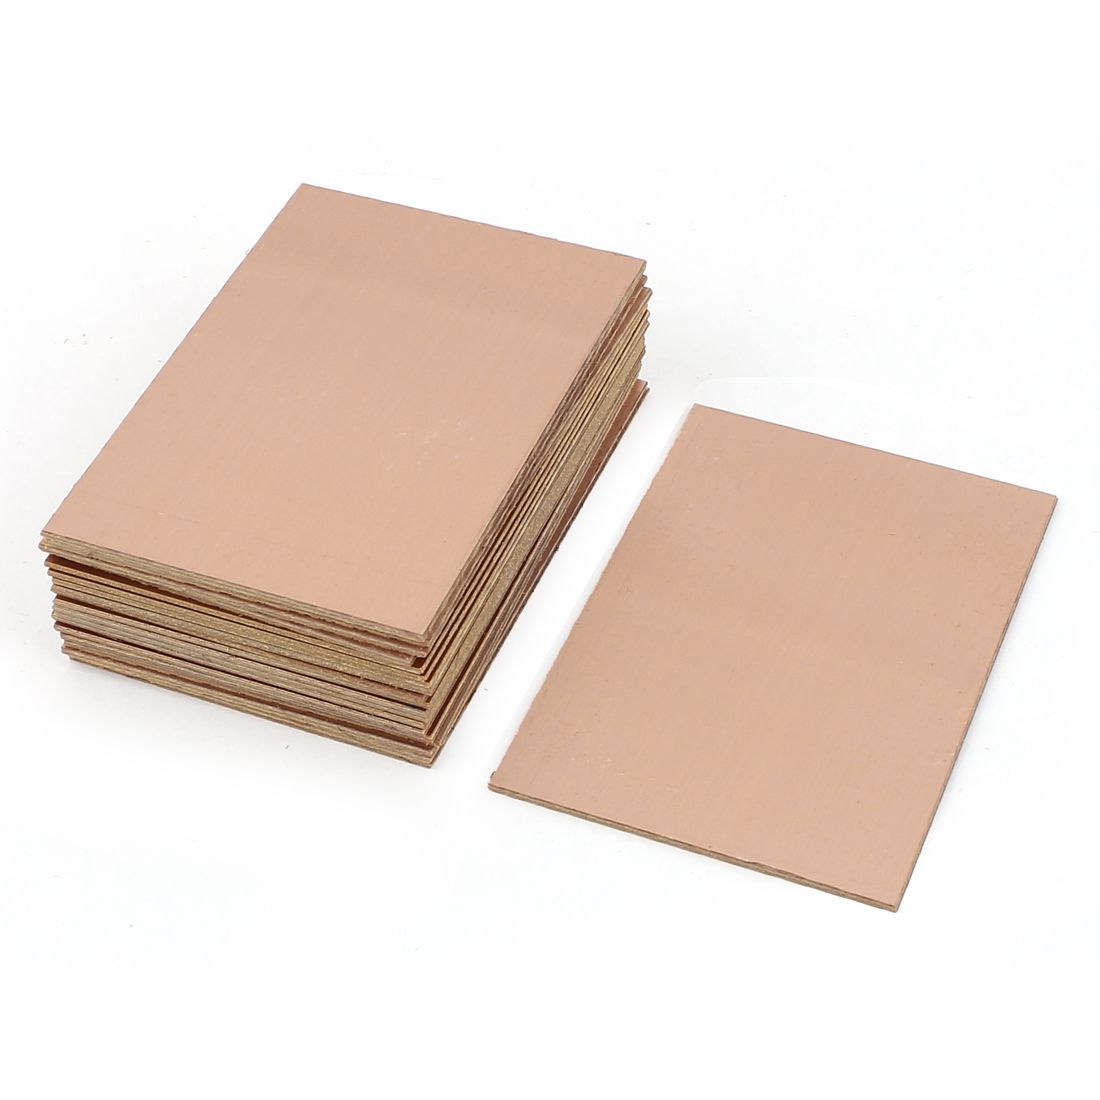 25Pcs 70 x 100 x 1.5mm FR-4 Single Side Copper Clad PCB Laminate Board